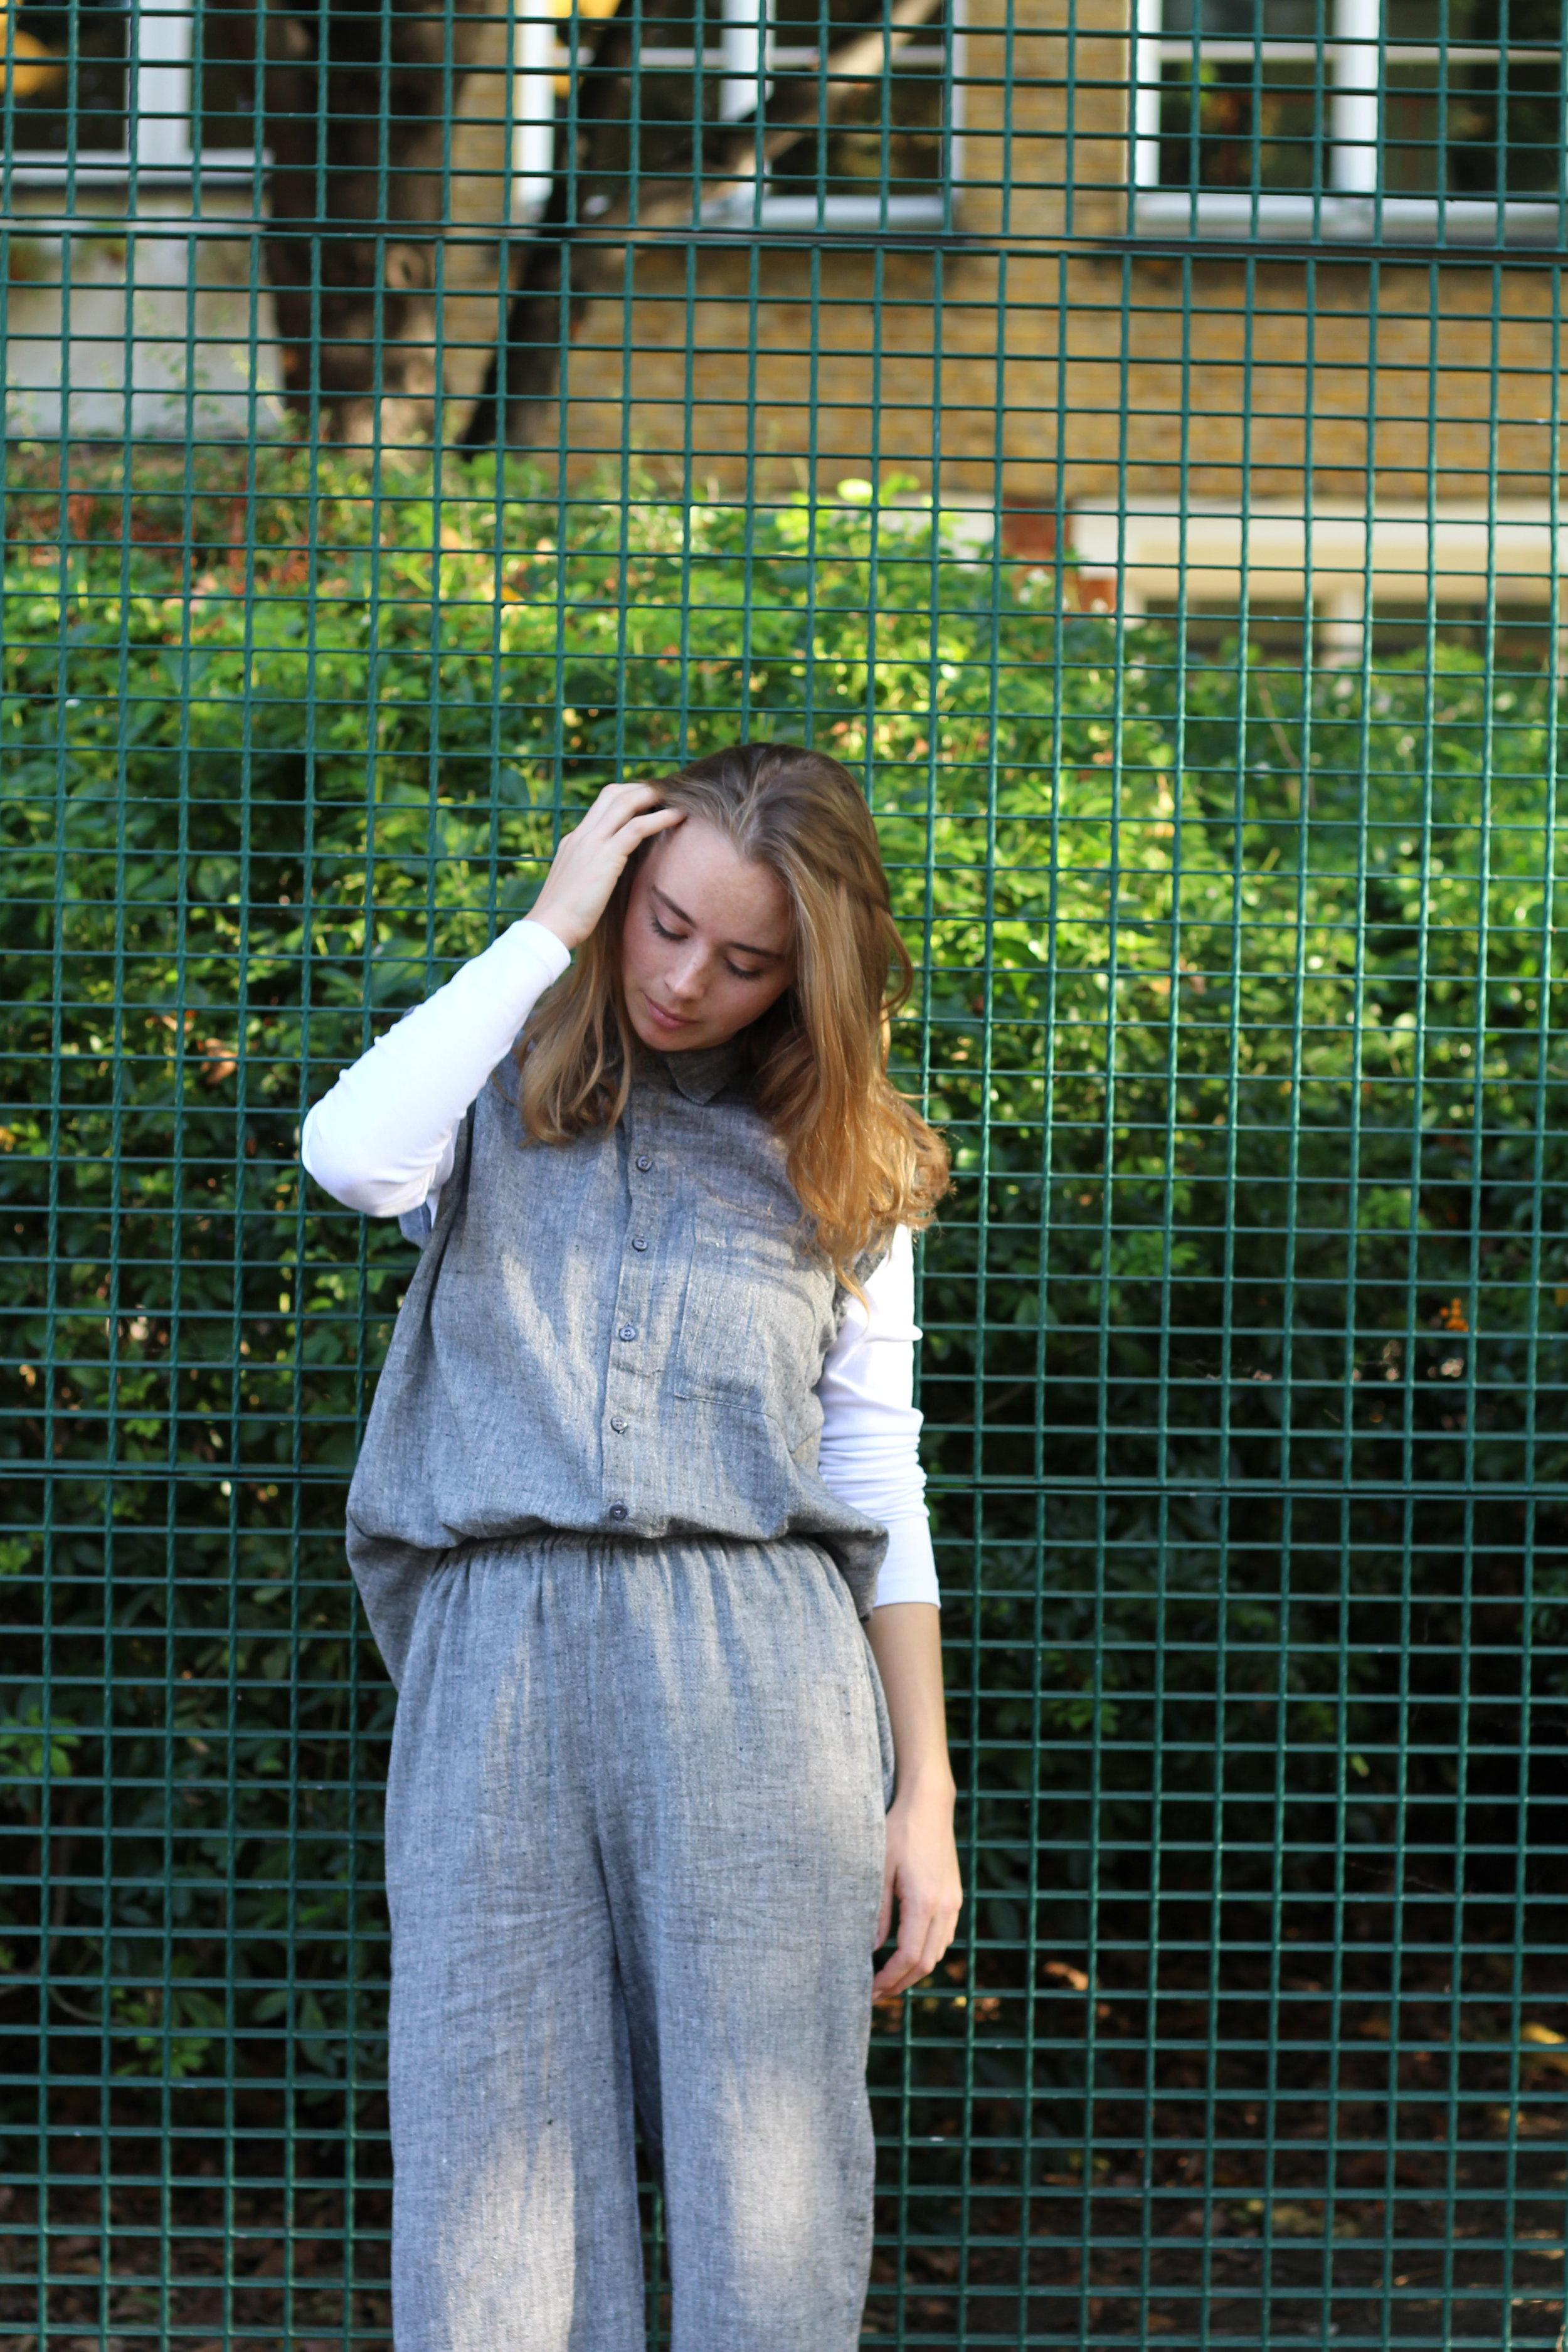 ED 1 THREAD NO. 8___VOLUMIOUS SLATE GRAY CROPPED CULOTTES